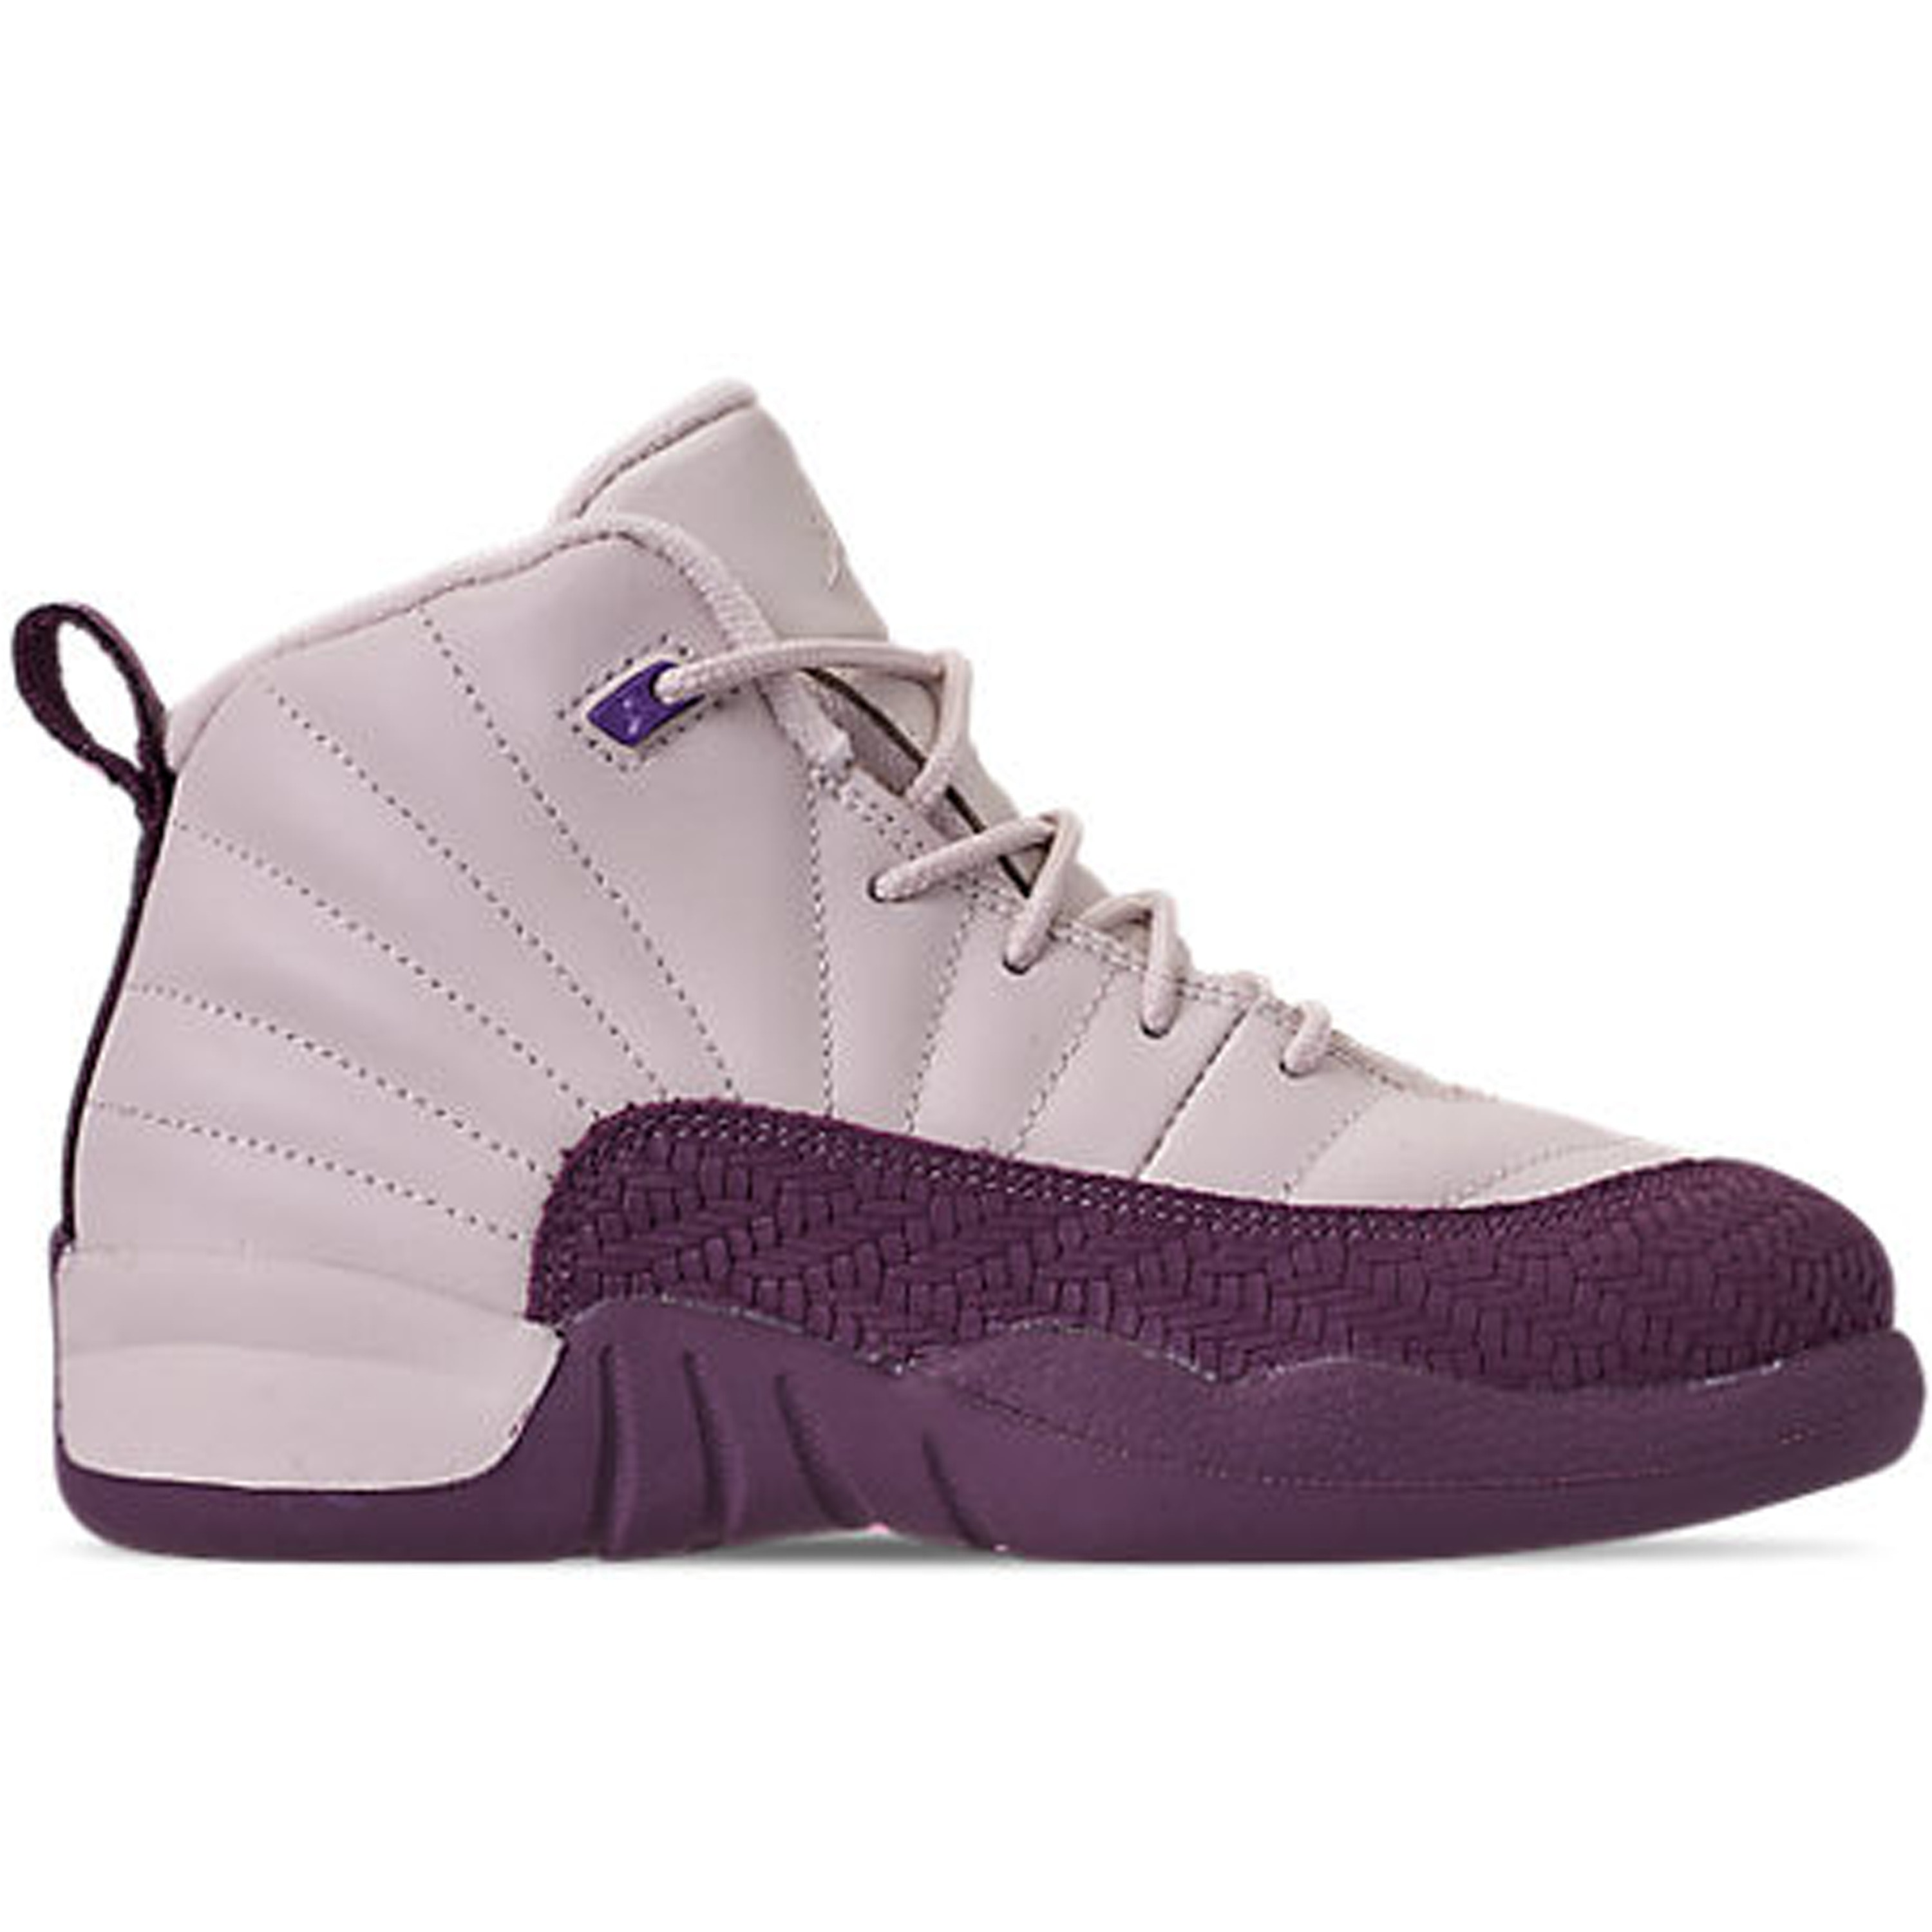 Jordan 12 Retro Desert Sand (PS) (510816-001)